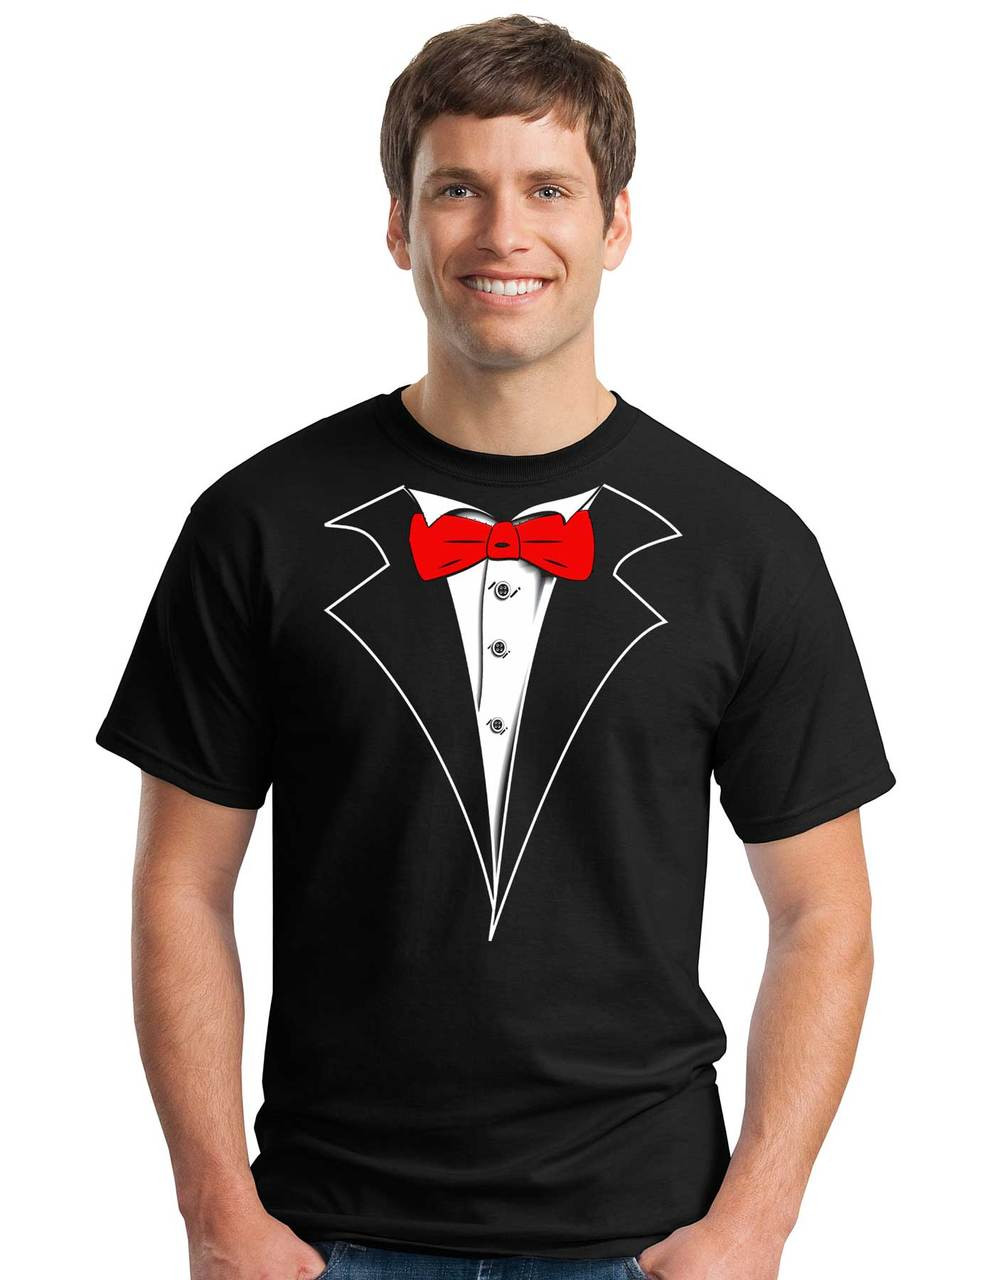 1660b17a7 Tuxedo T-shirt with Red Bow Tie on Black No Carnation | Shop Men's Black  Tuxedo Tees